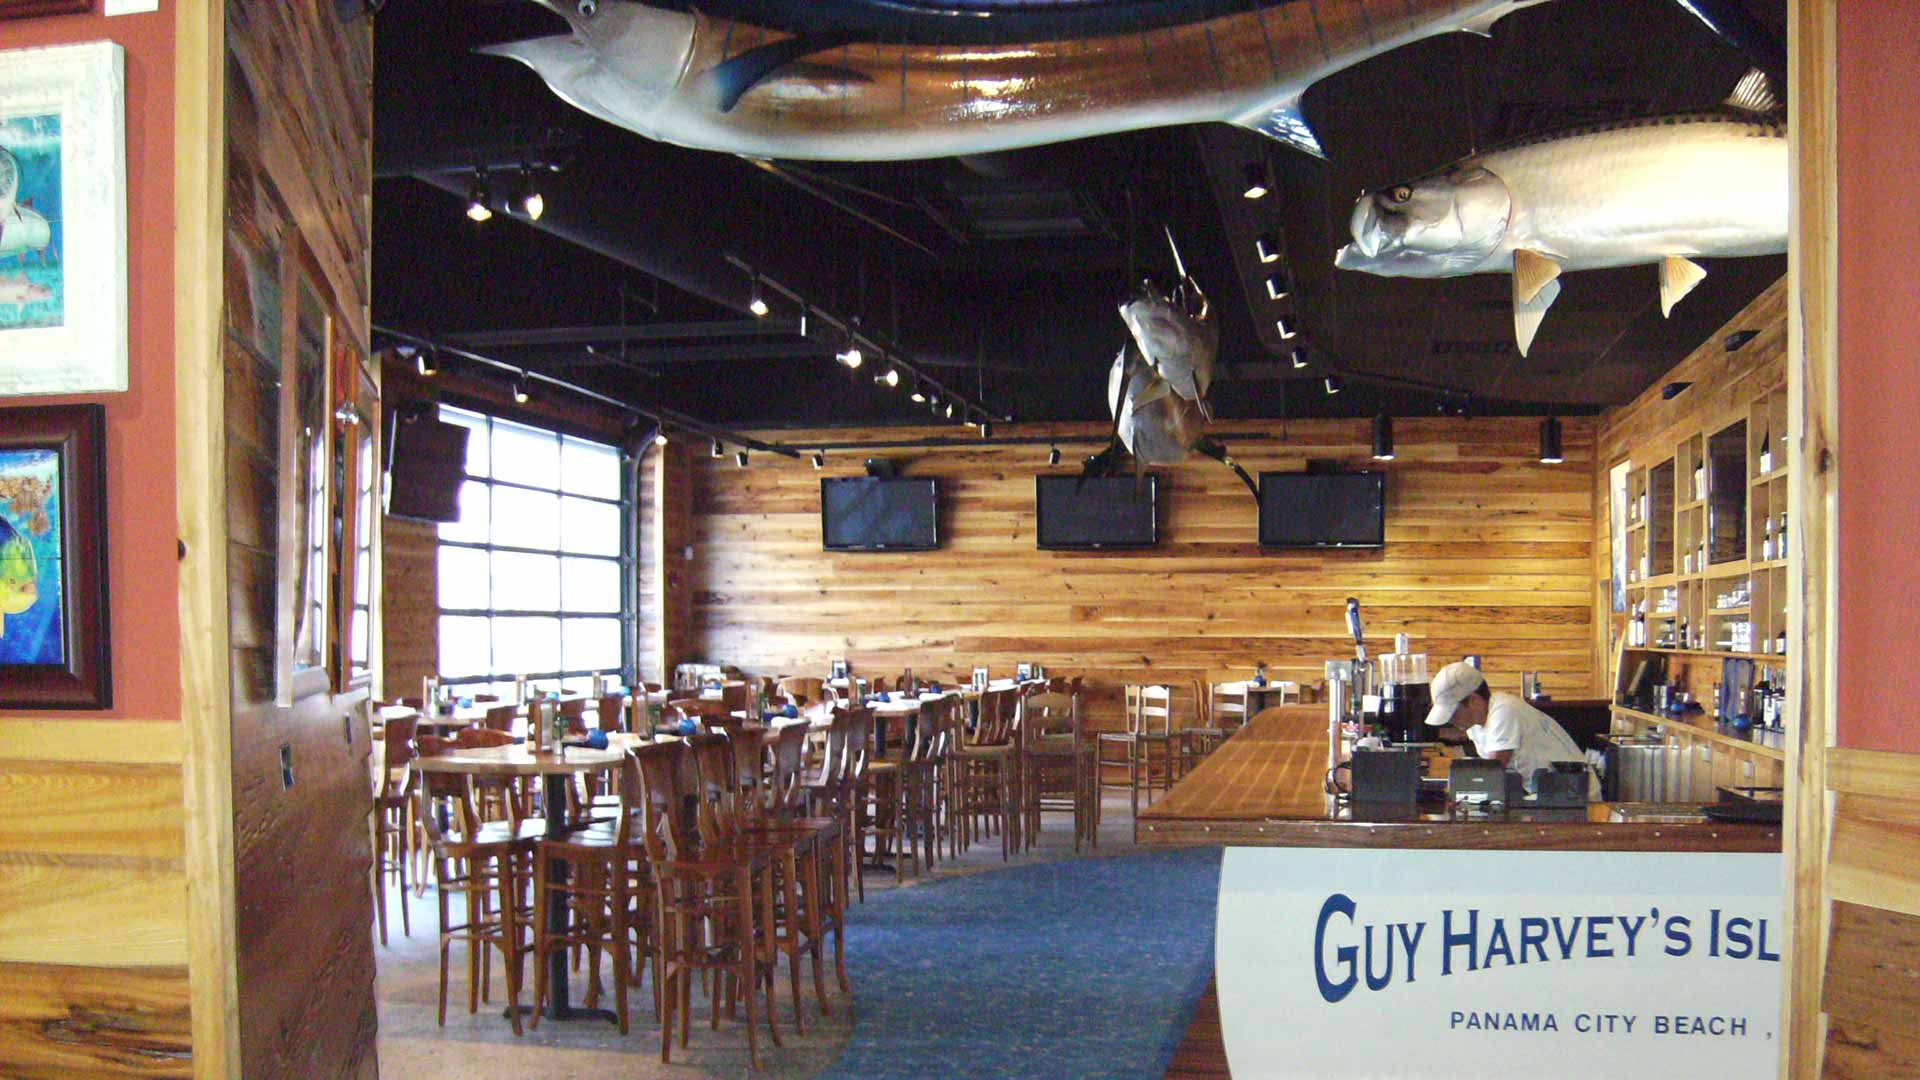 Custom dining area in an ocean fish themed restaurant.